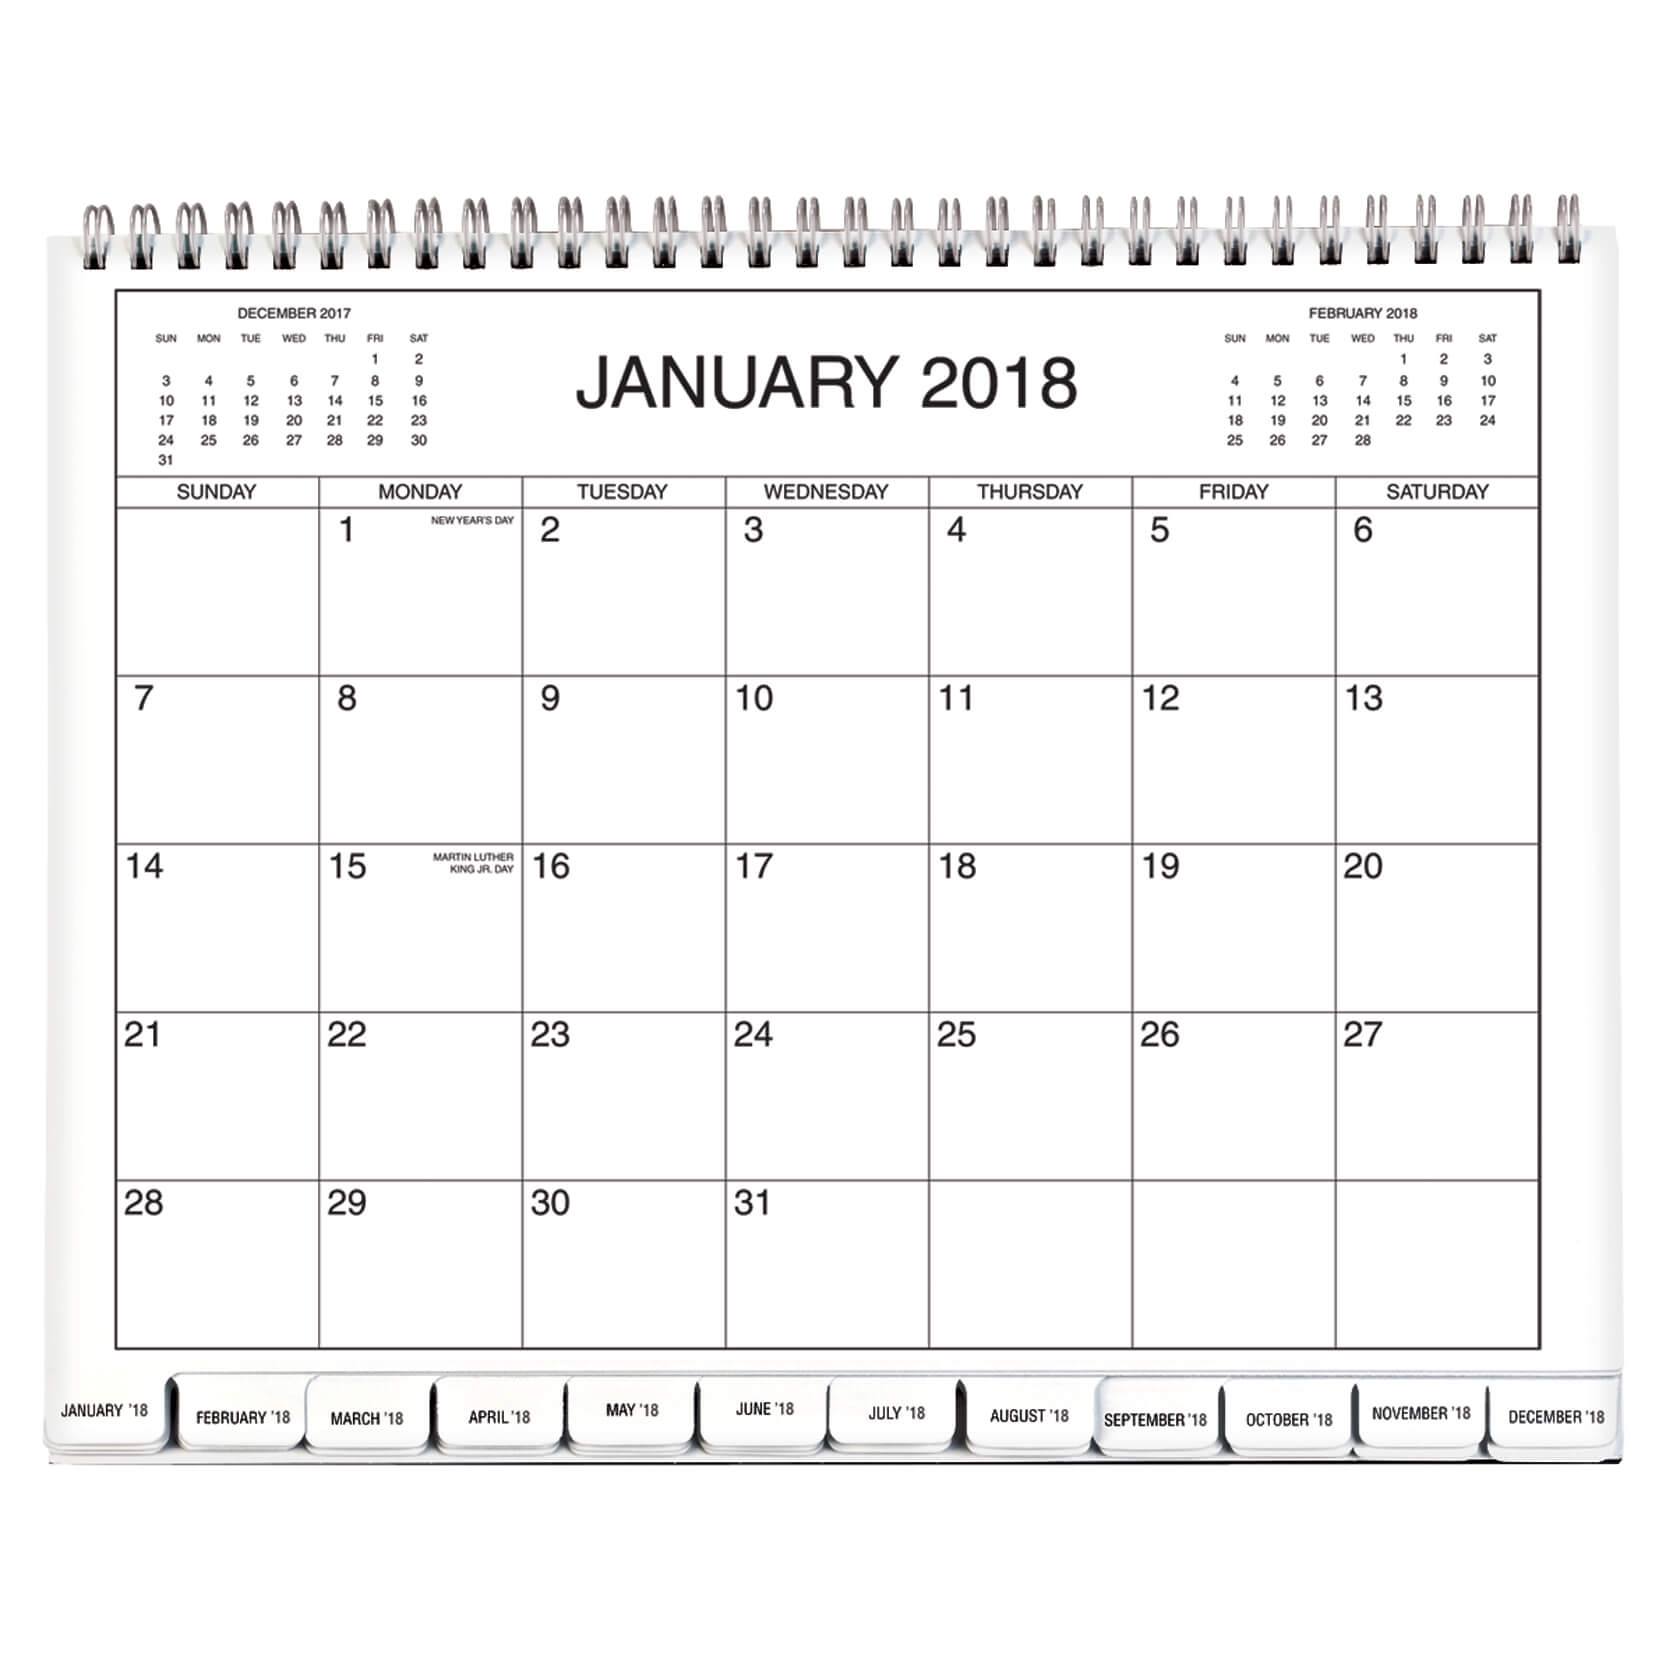 5 Year Calendar 2018-2019-2020-2021-2022 - Monthly Calendar - Walter for Printable Year Calendar 2019 - 2020 With Space To Write